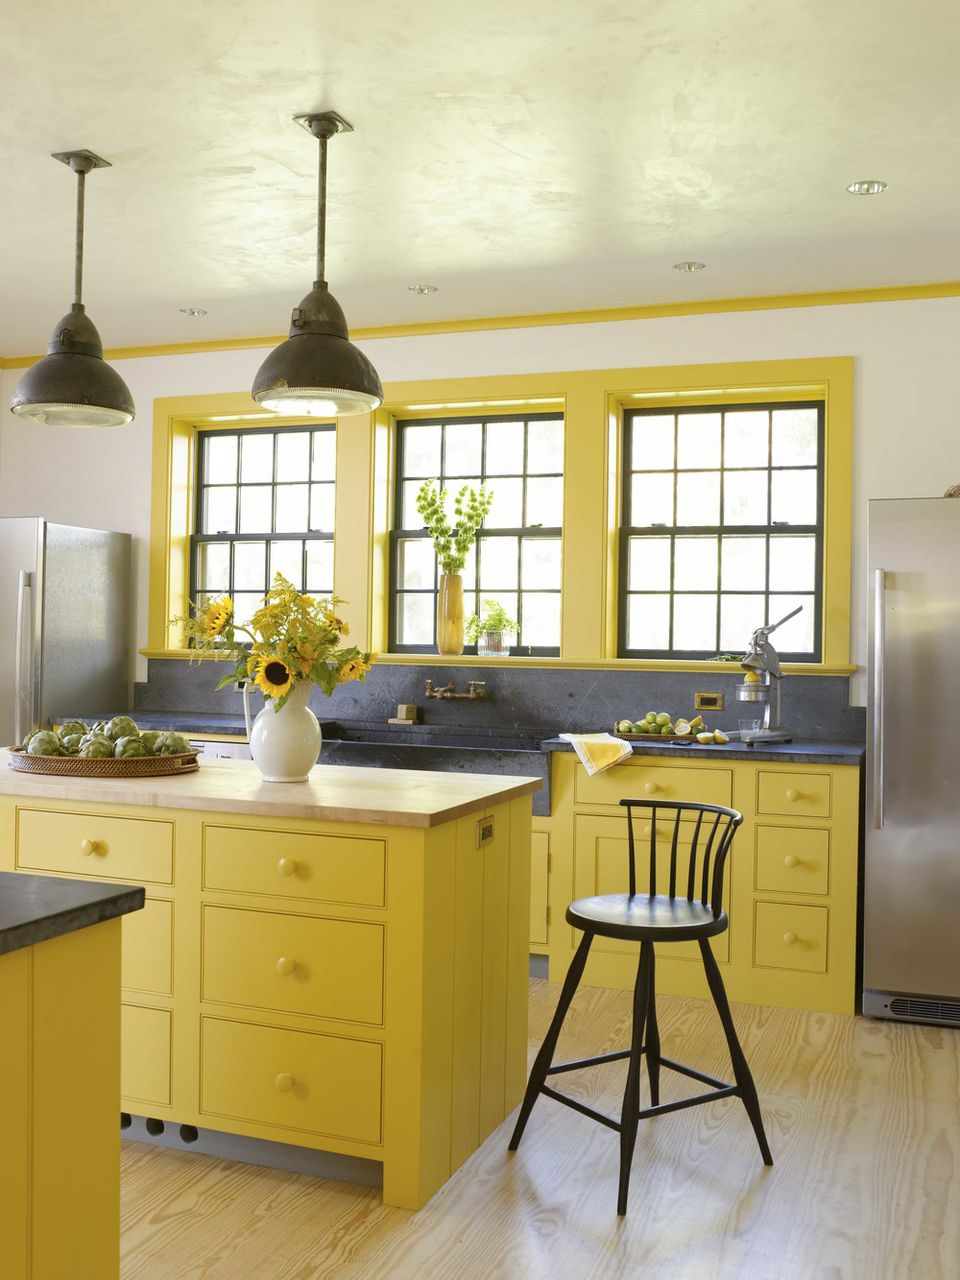 Home Architec Ideas Yellow And Grey Kitchen Decor Ideas